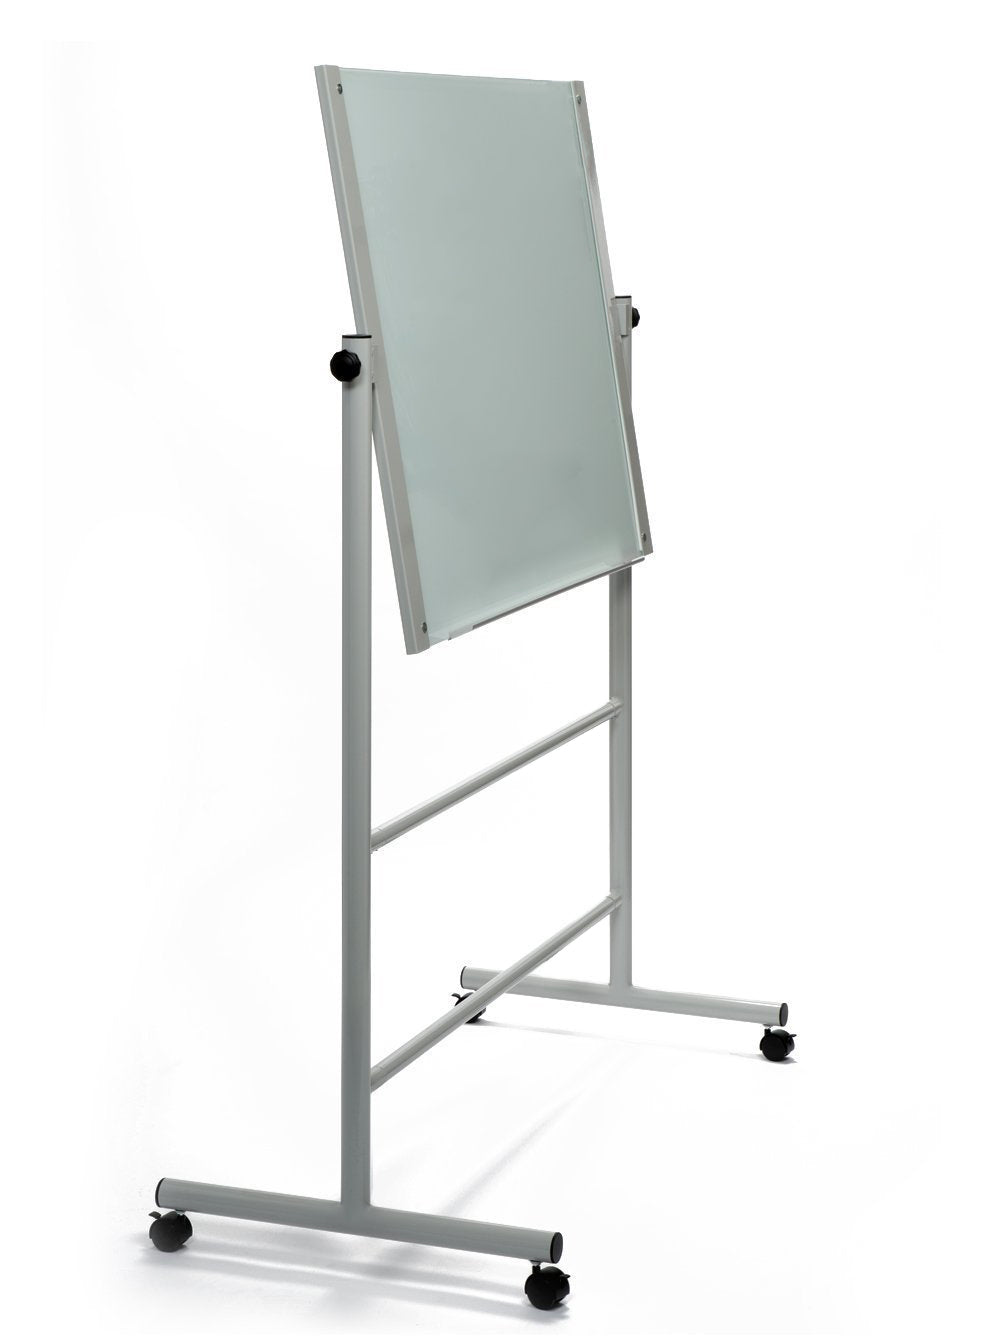 Easel Stand For Glass Dry Erase Board Does Not Include Glass Board